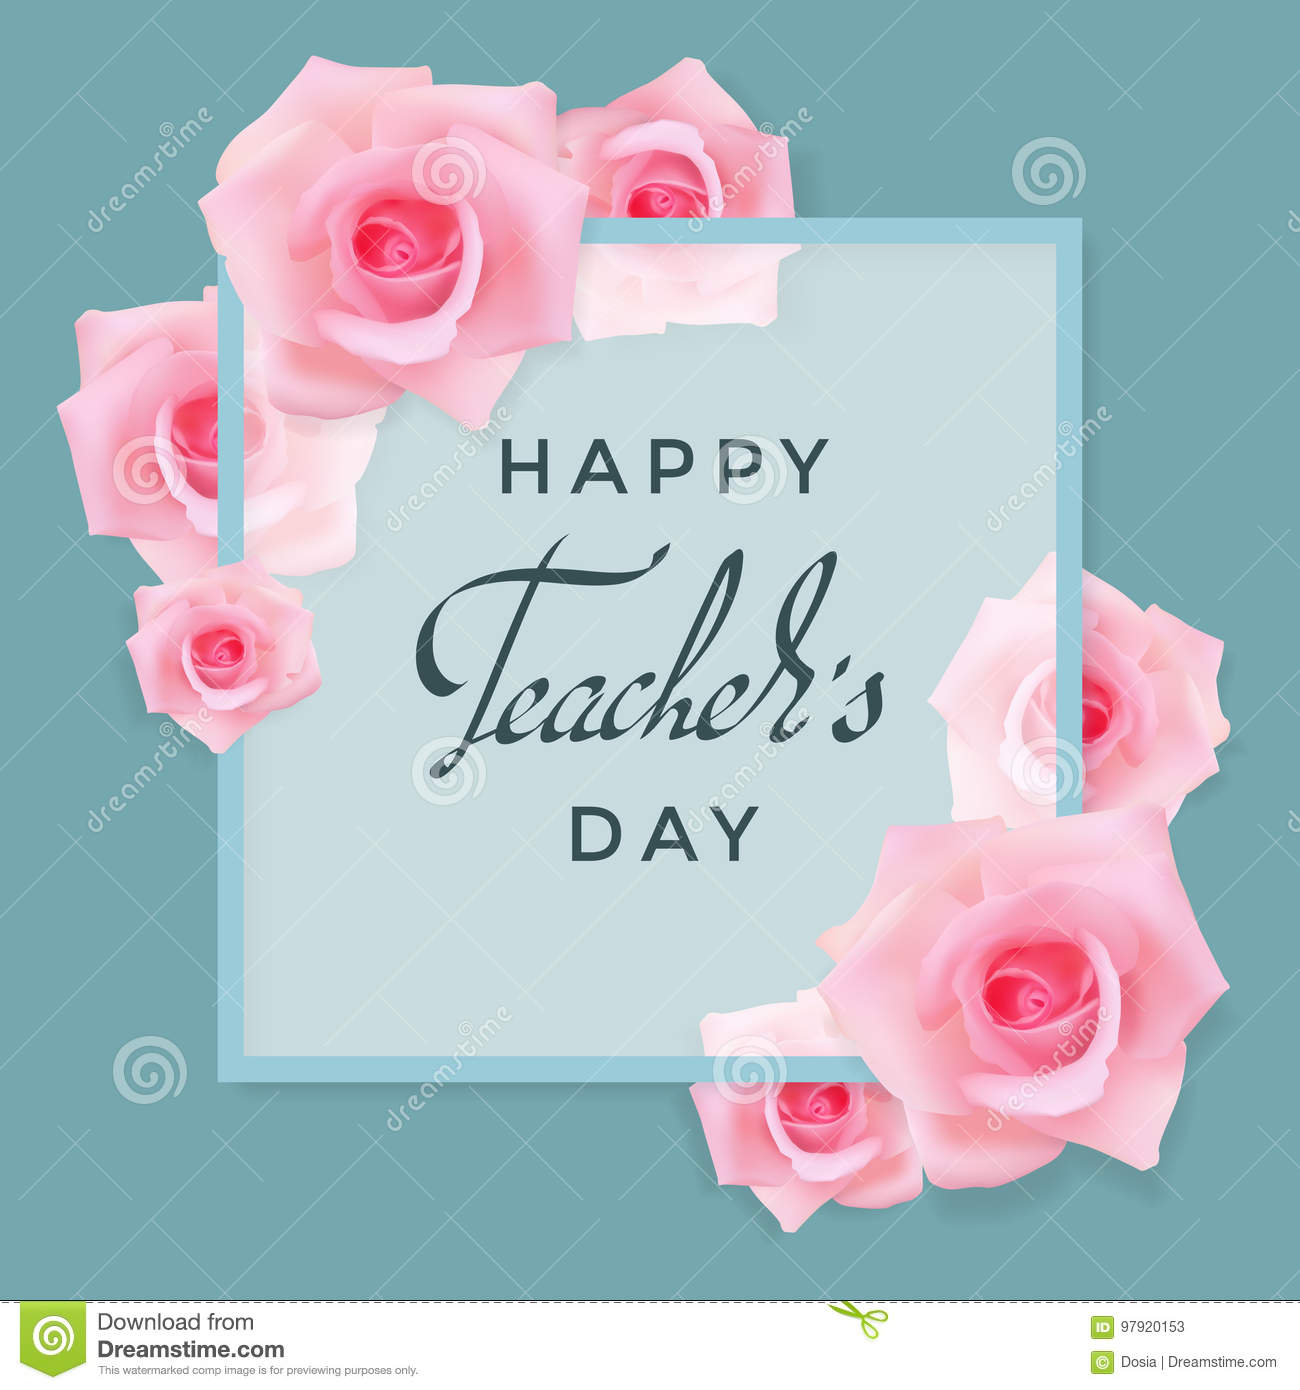 Handmade Greeting Cards Designs For Teachers Day Labzada Wallpaper